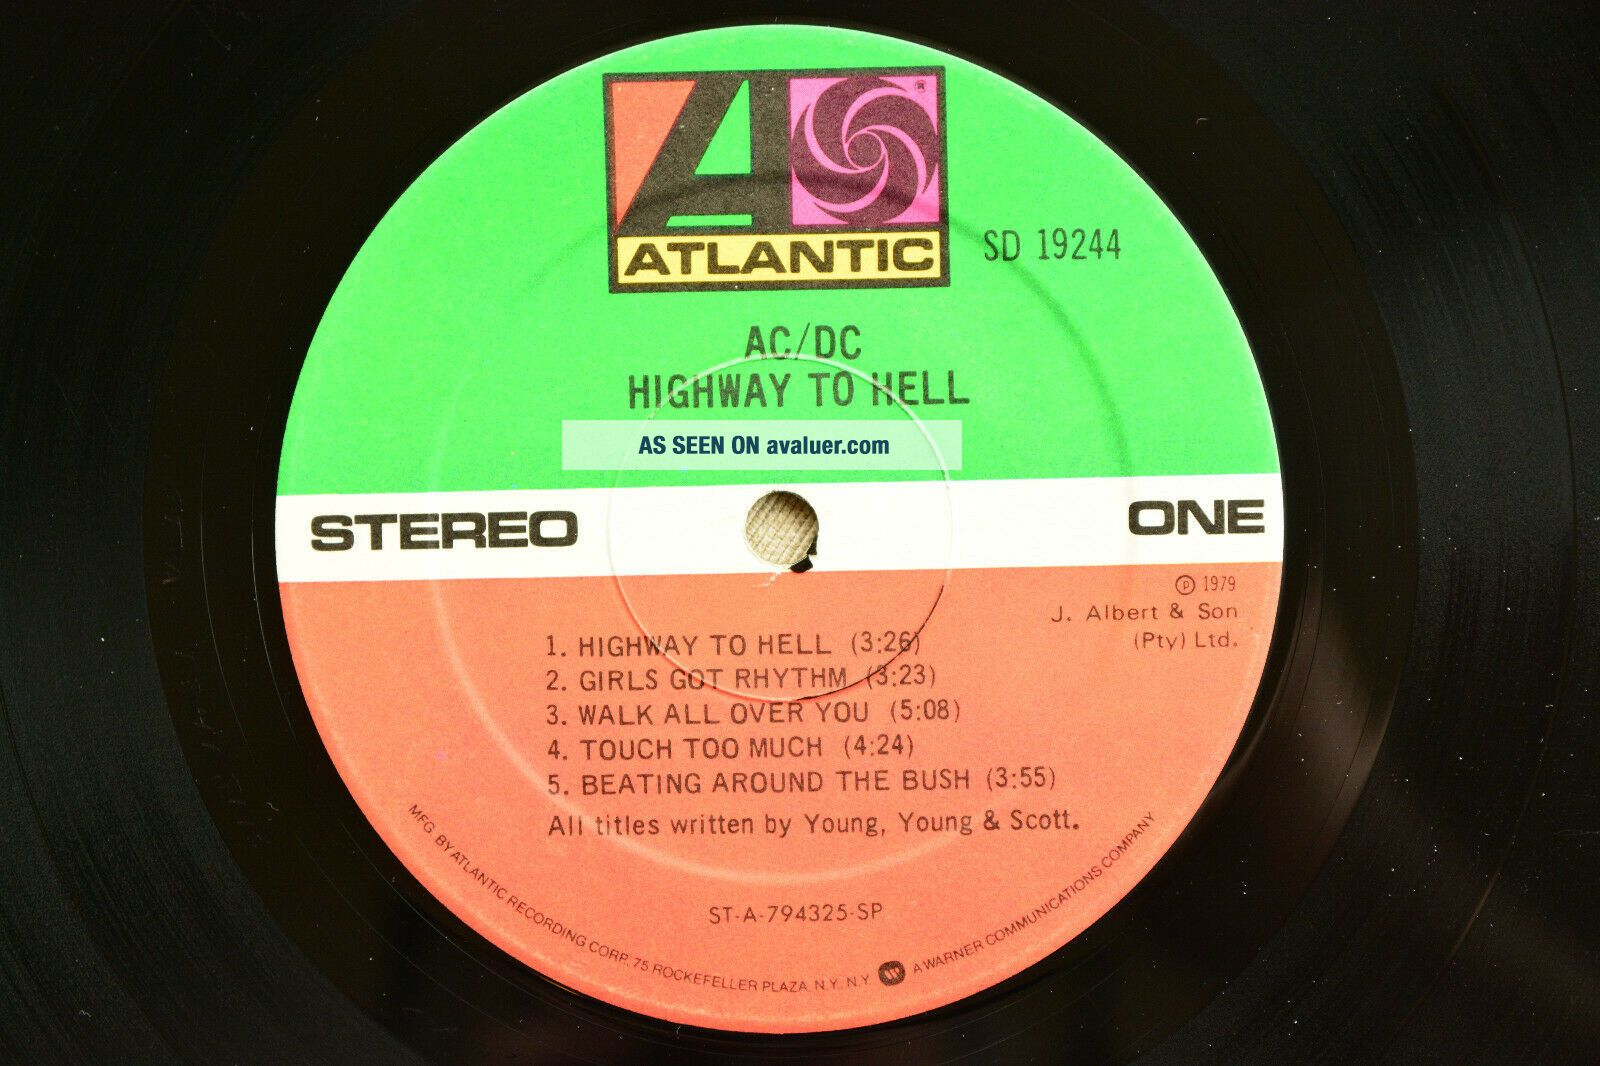 AC/DC Highway To Hell SD - 19244 Atlantic Records First ...